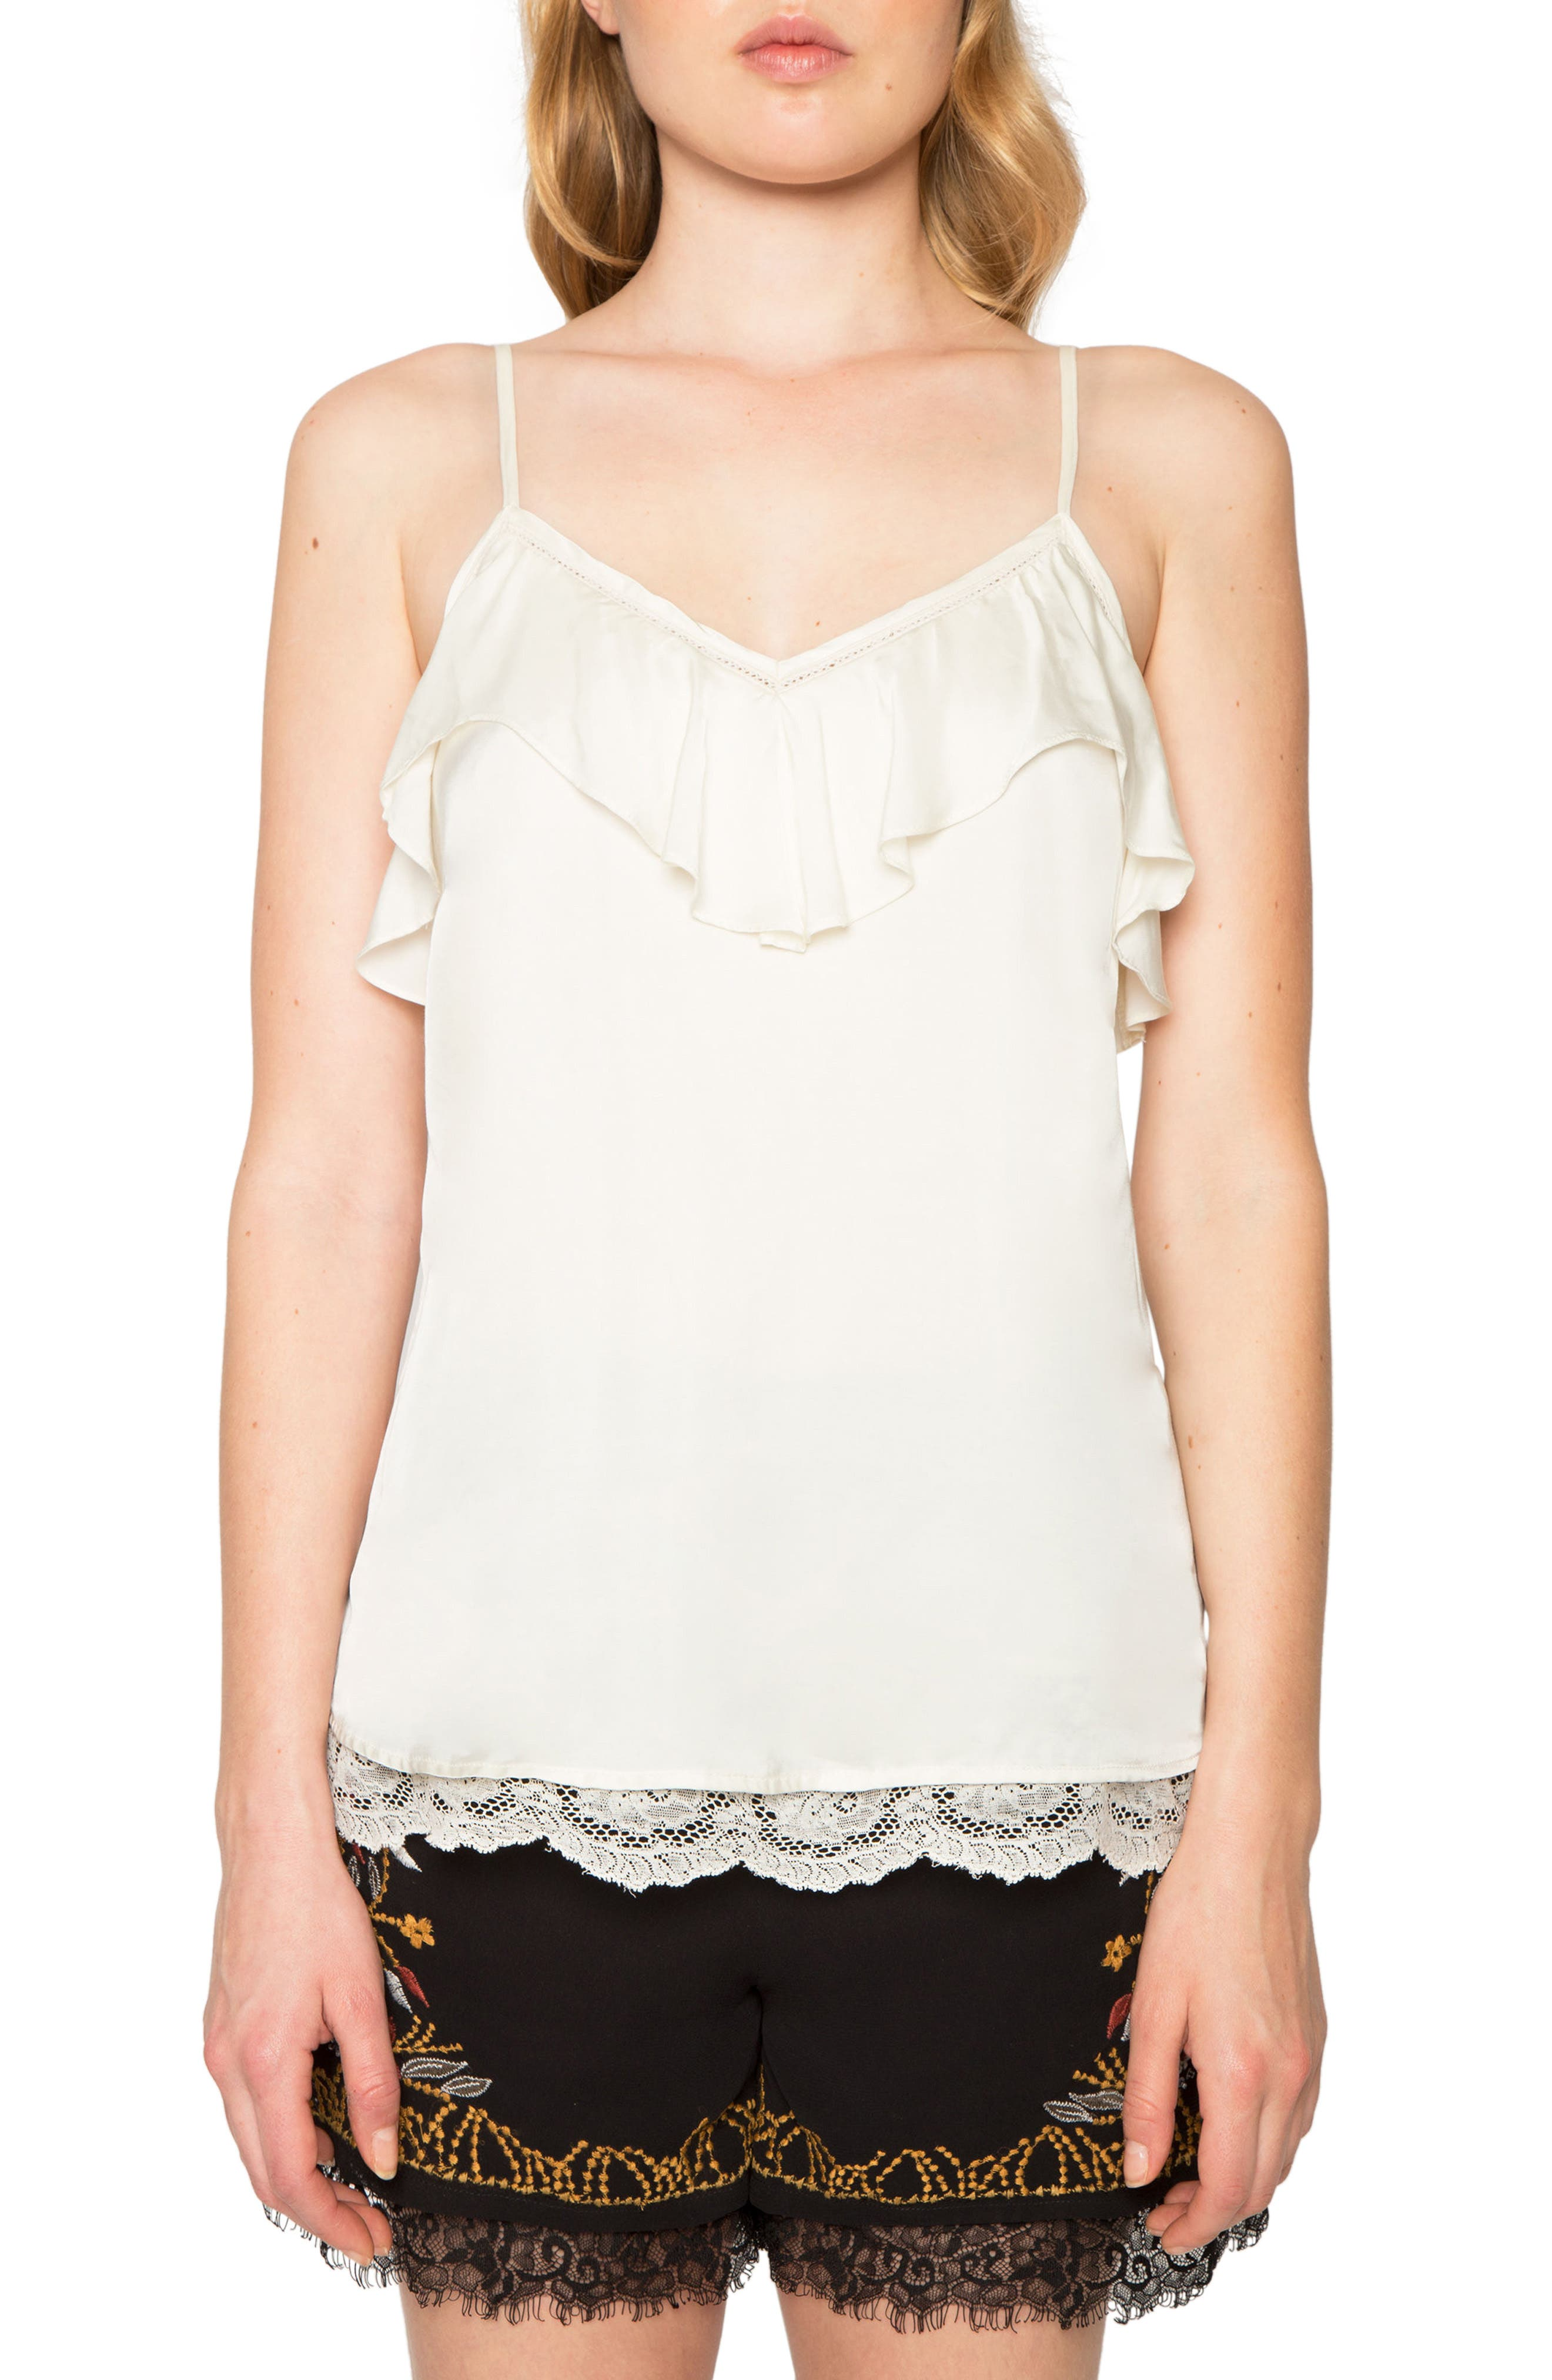 Alternate Image 1 Selected - Willow & Clay Ruffle Camisole